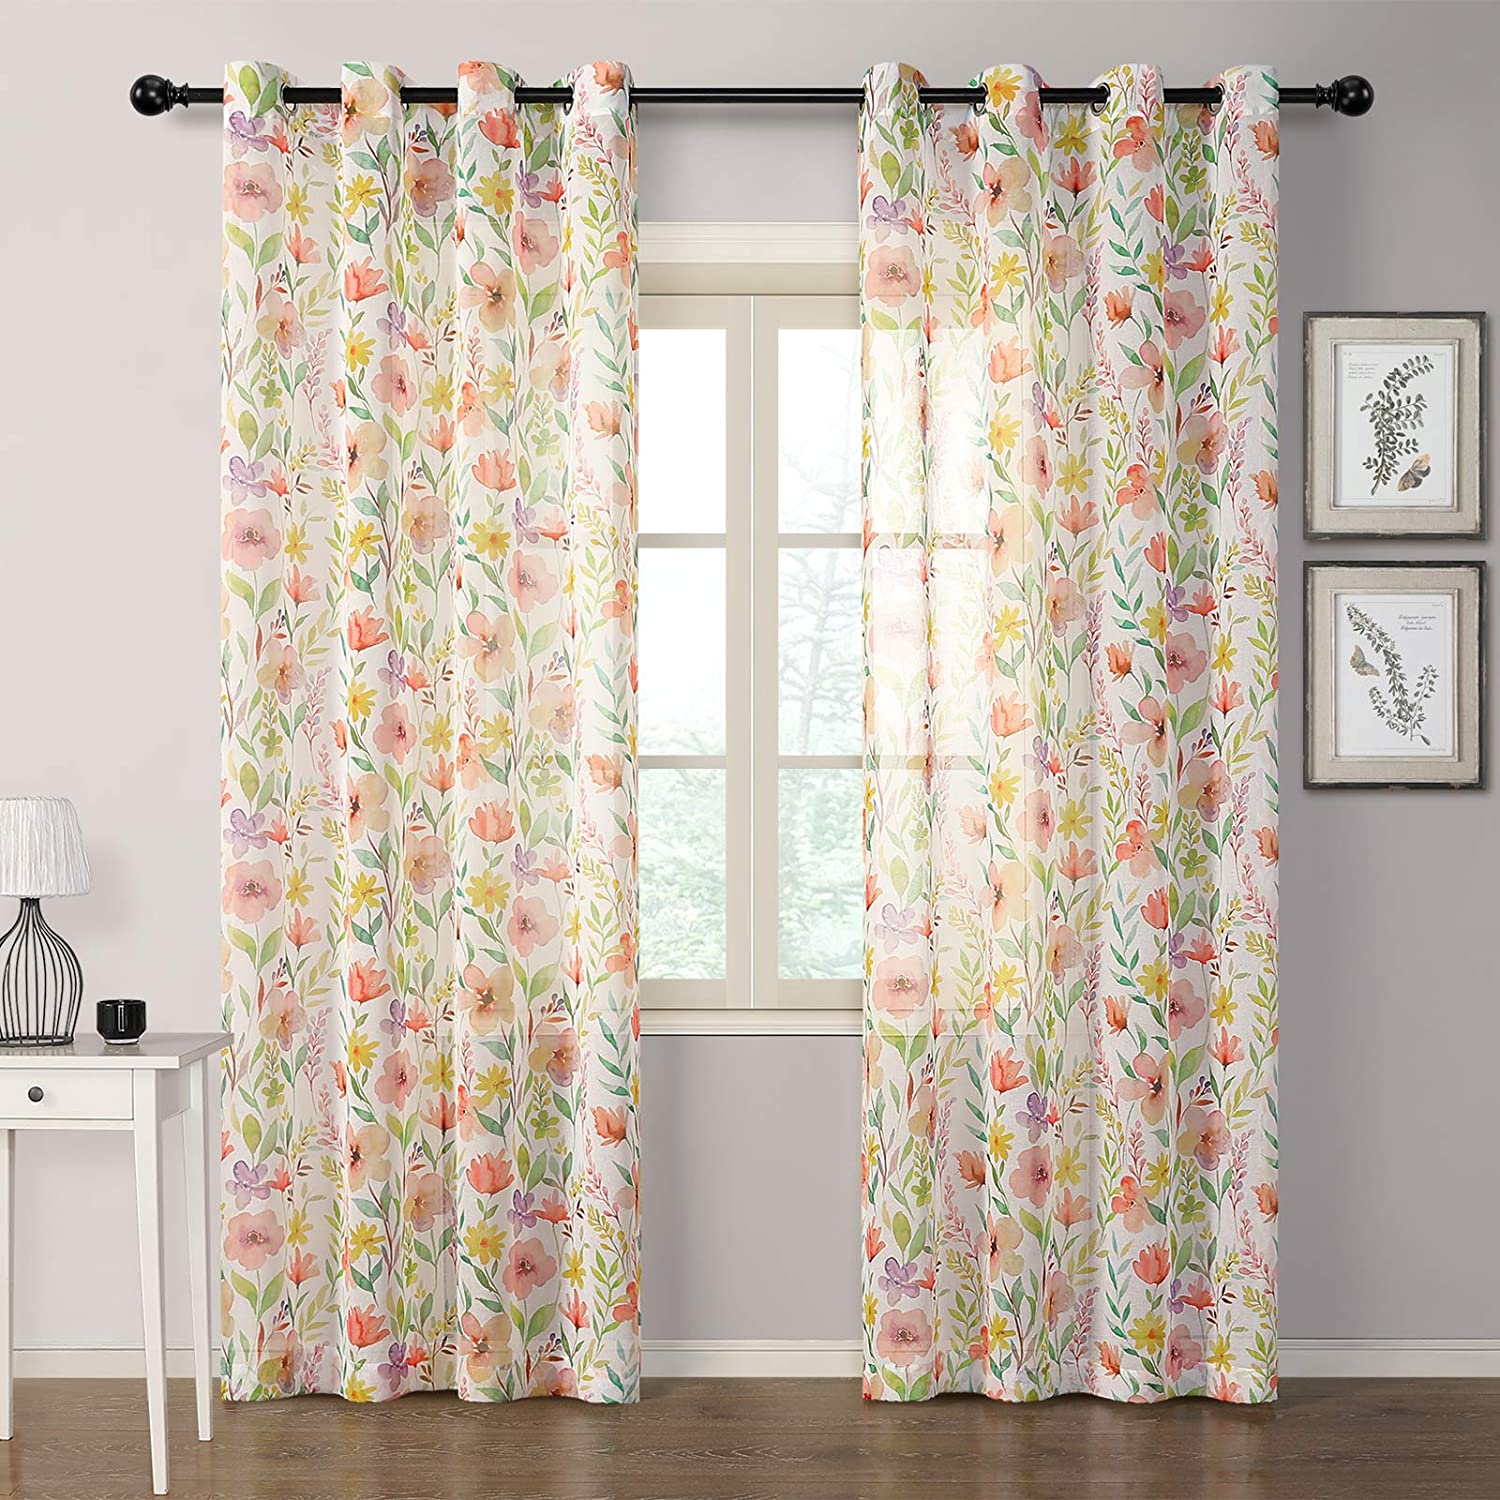 MYSKY HOME Blossom Printed Sheer Curtains 84 inches Long Colorful Living Room Curtains 2 Panel Sets Voile Sheer Curtains for Bedroom, Grommet, 52